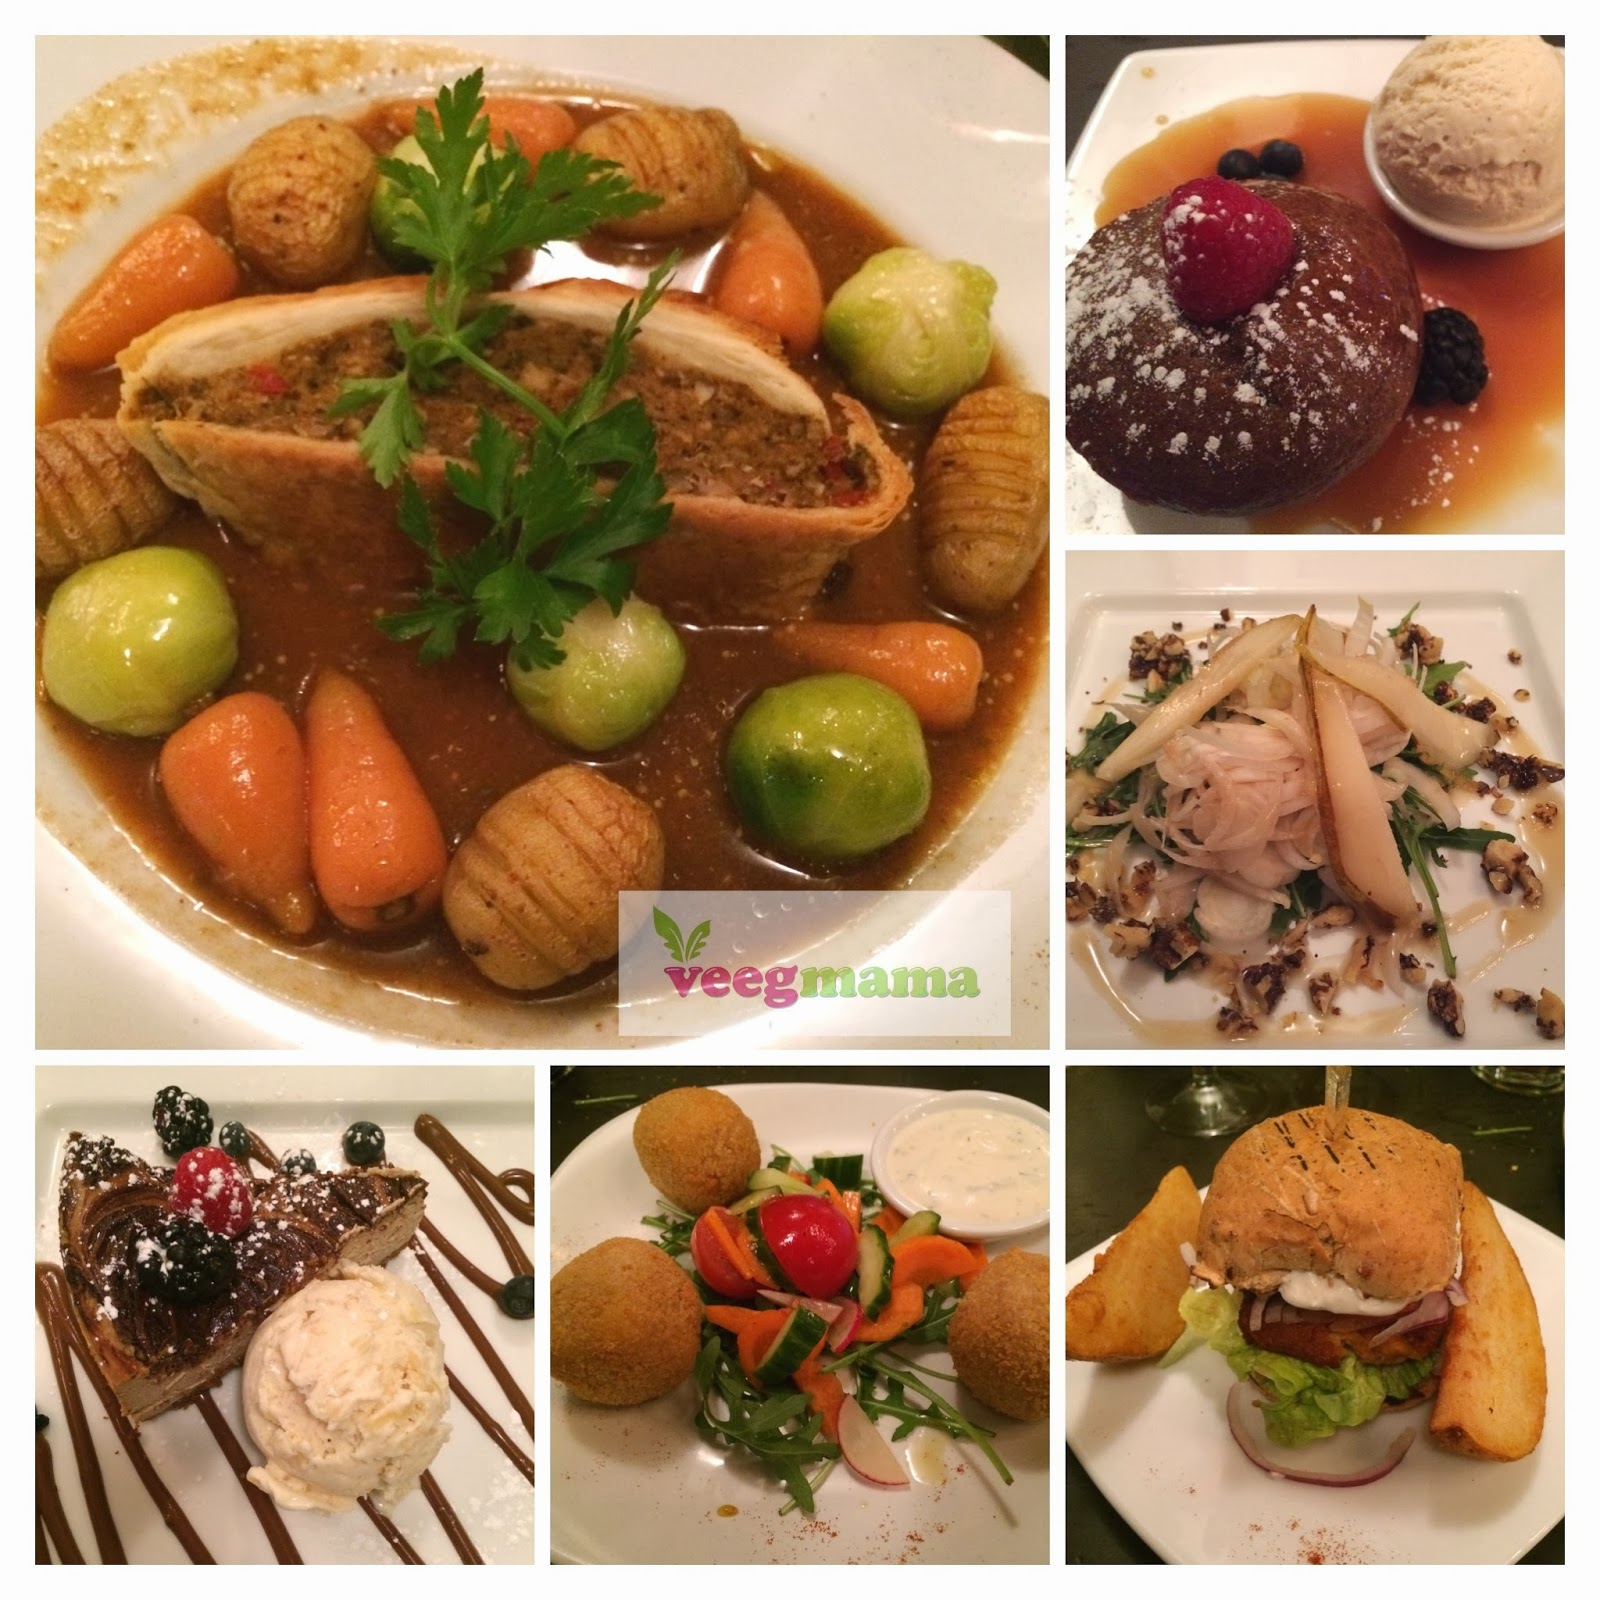 Vegan dinner at Manna in London